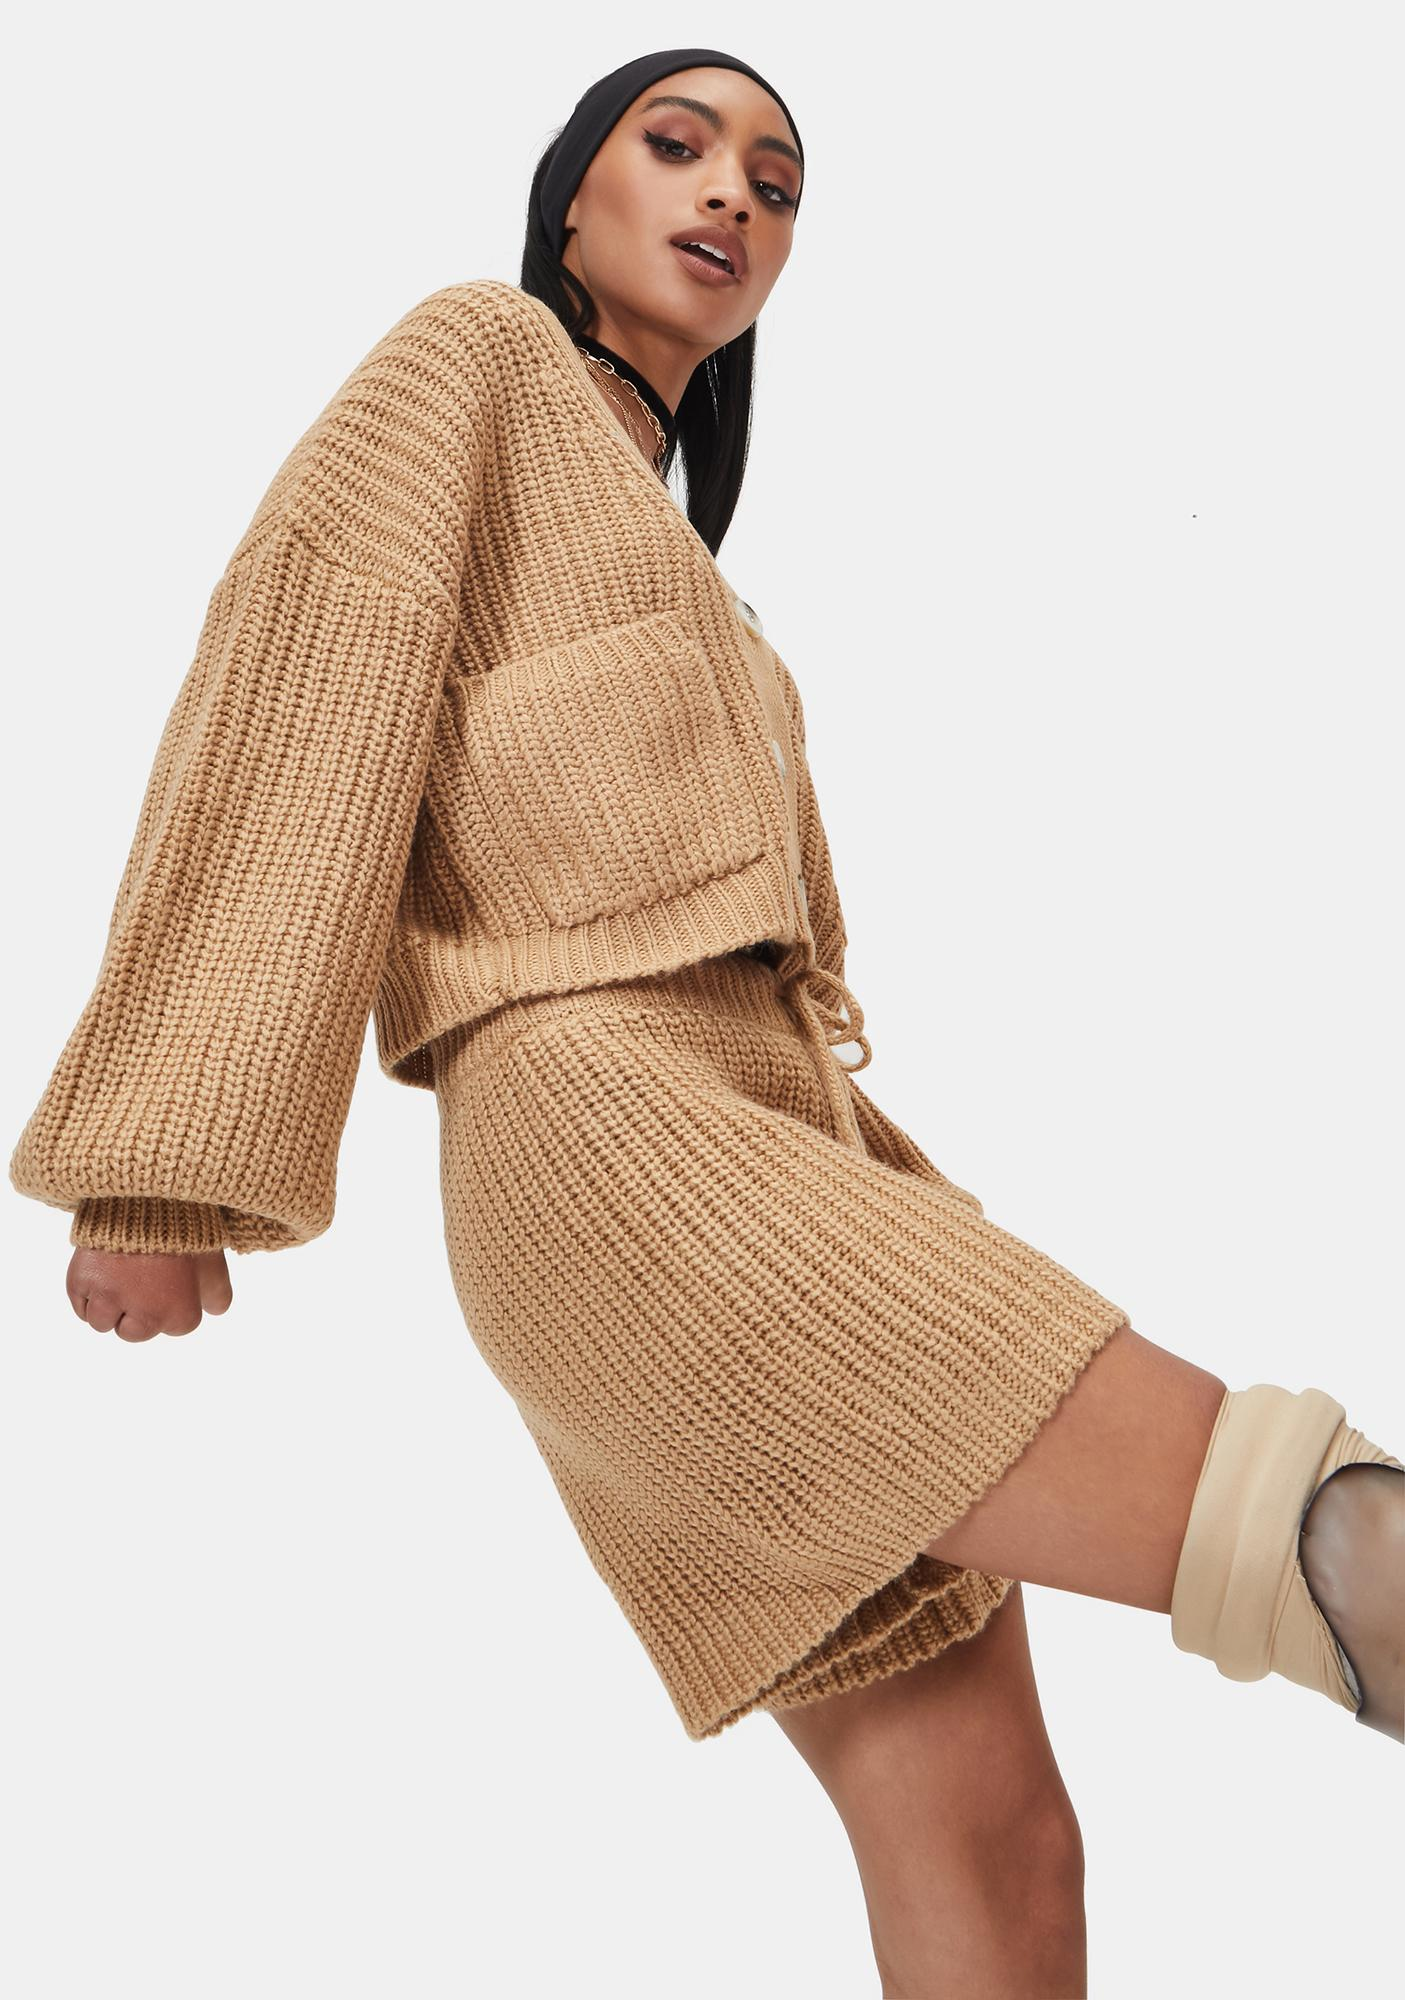 4TH & RECKLESS Camel Henry Chunky Knitted Cardigan